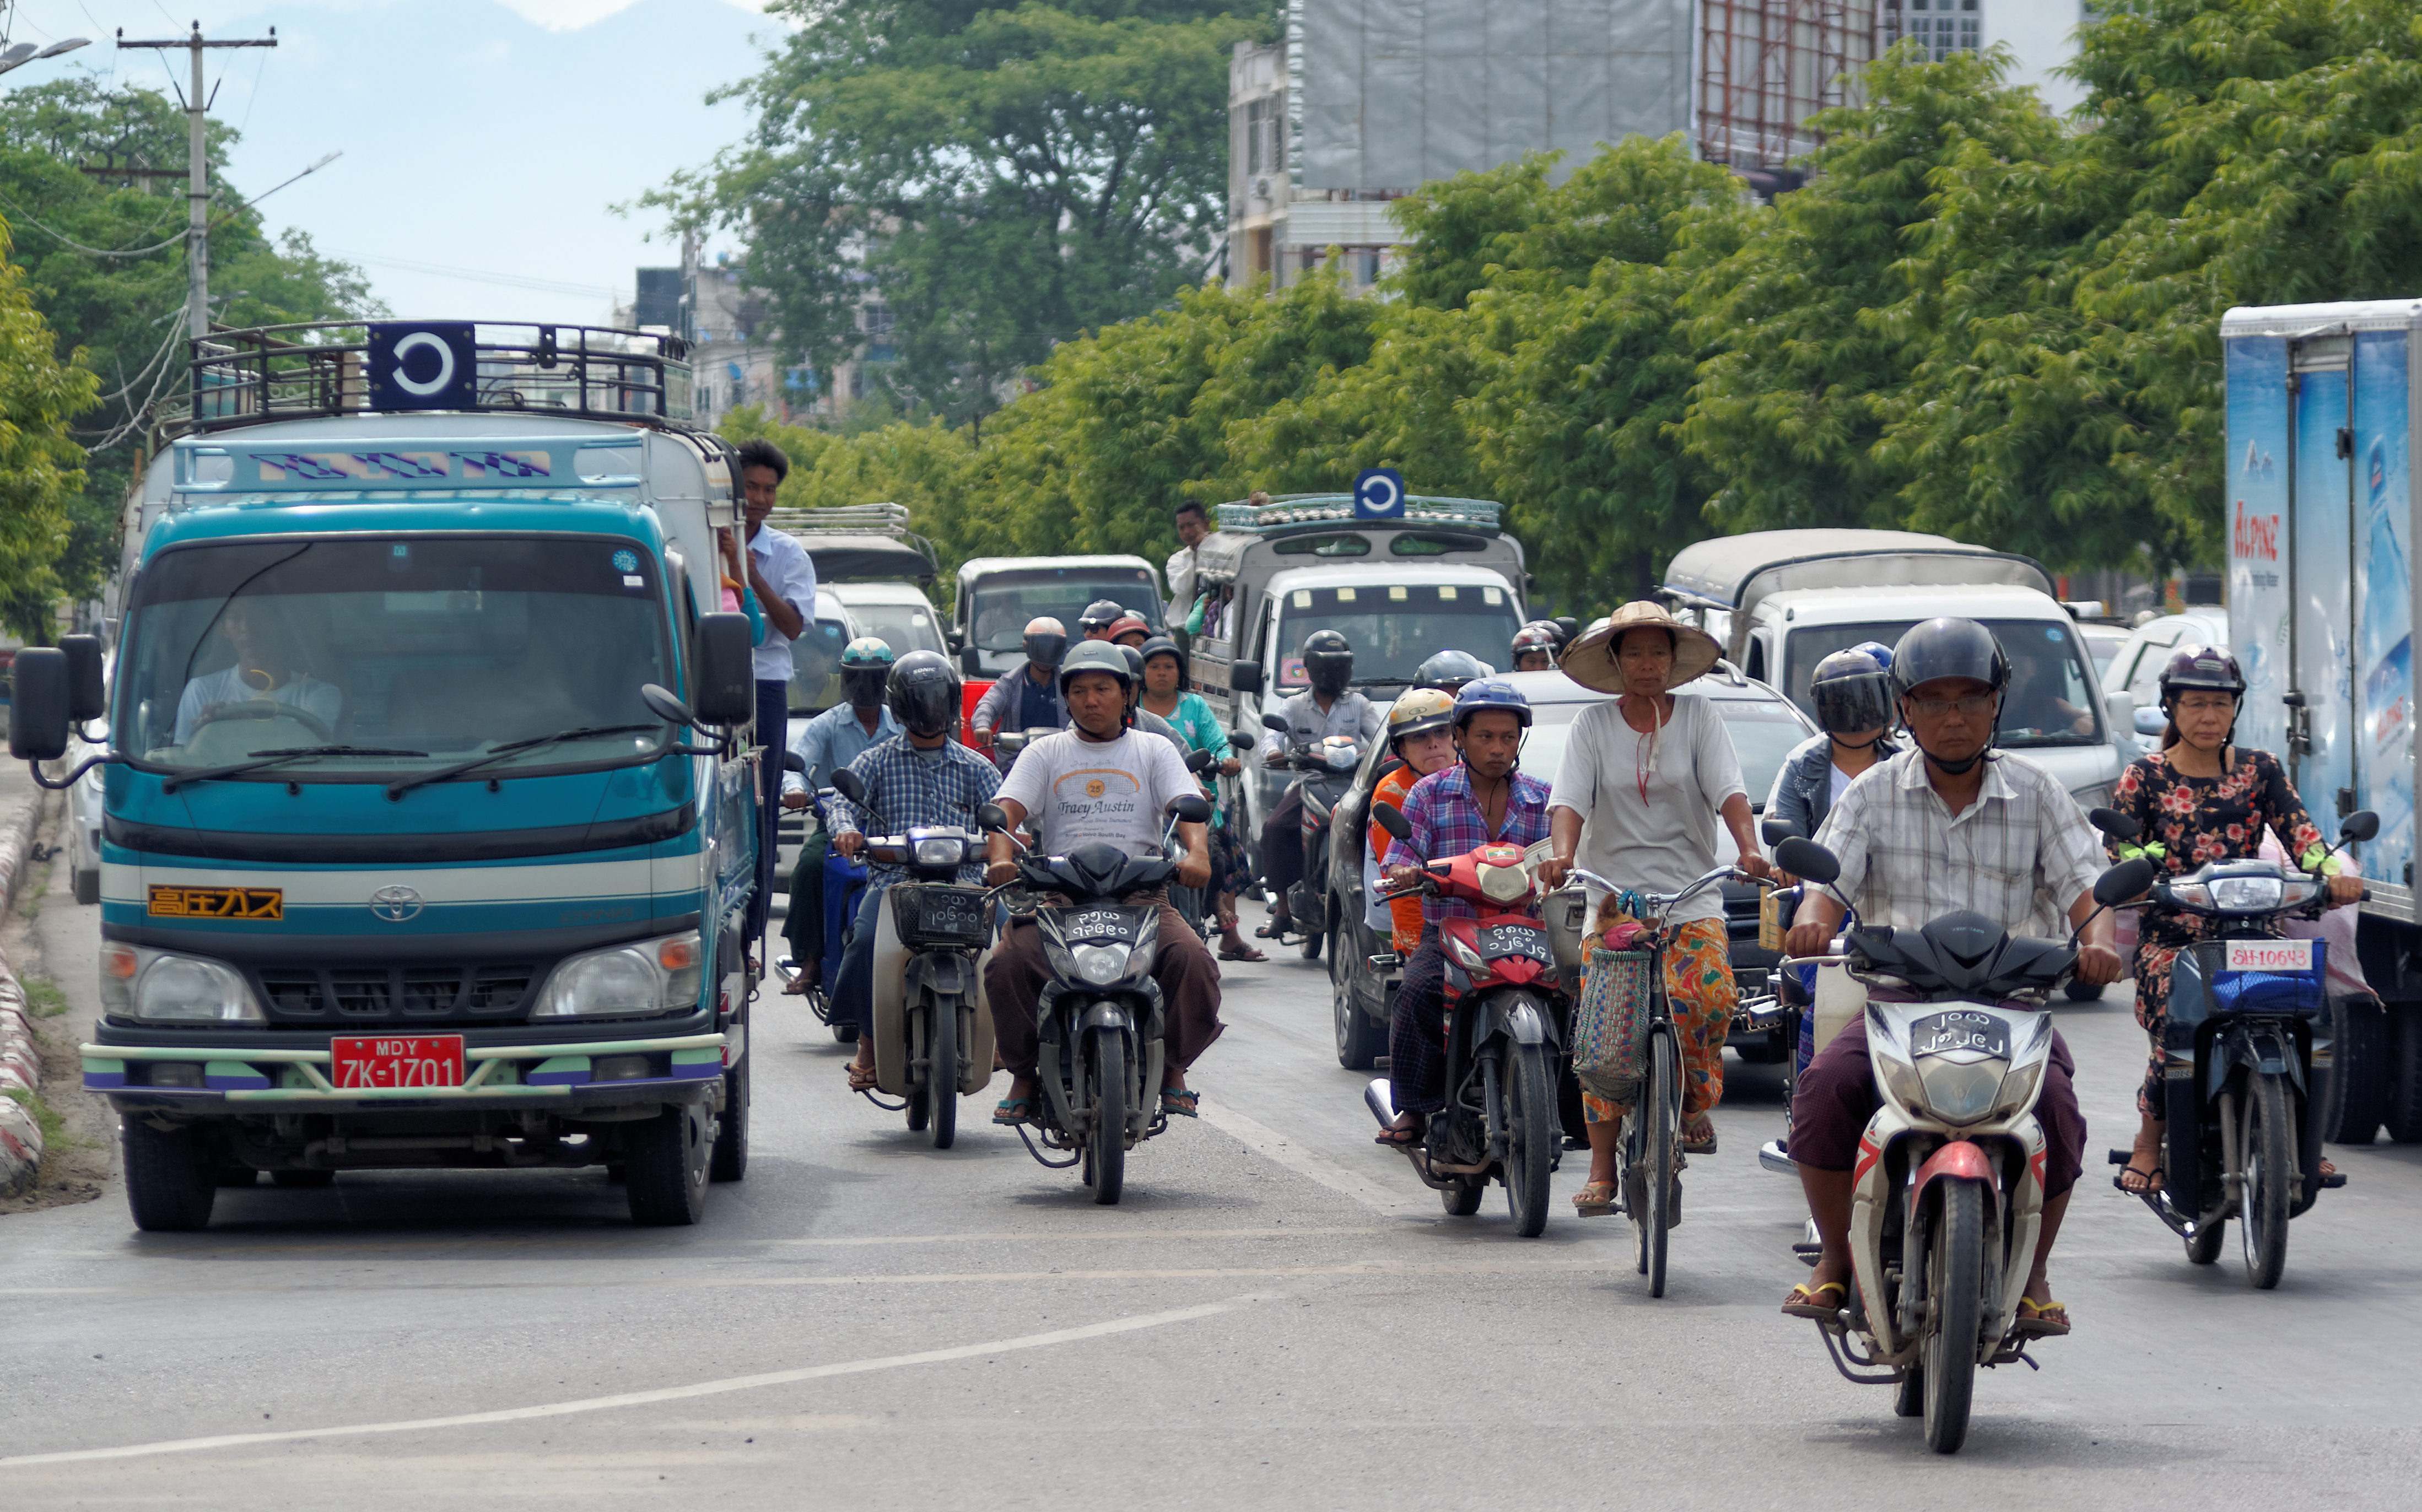 20160729 traffic in Mandalay 5761